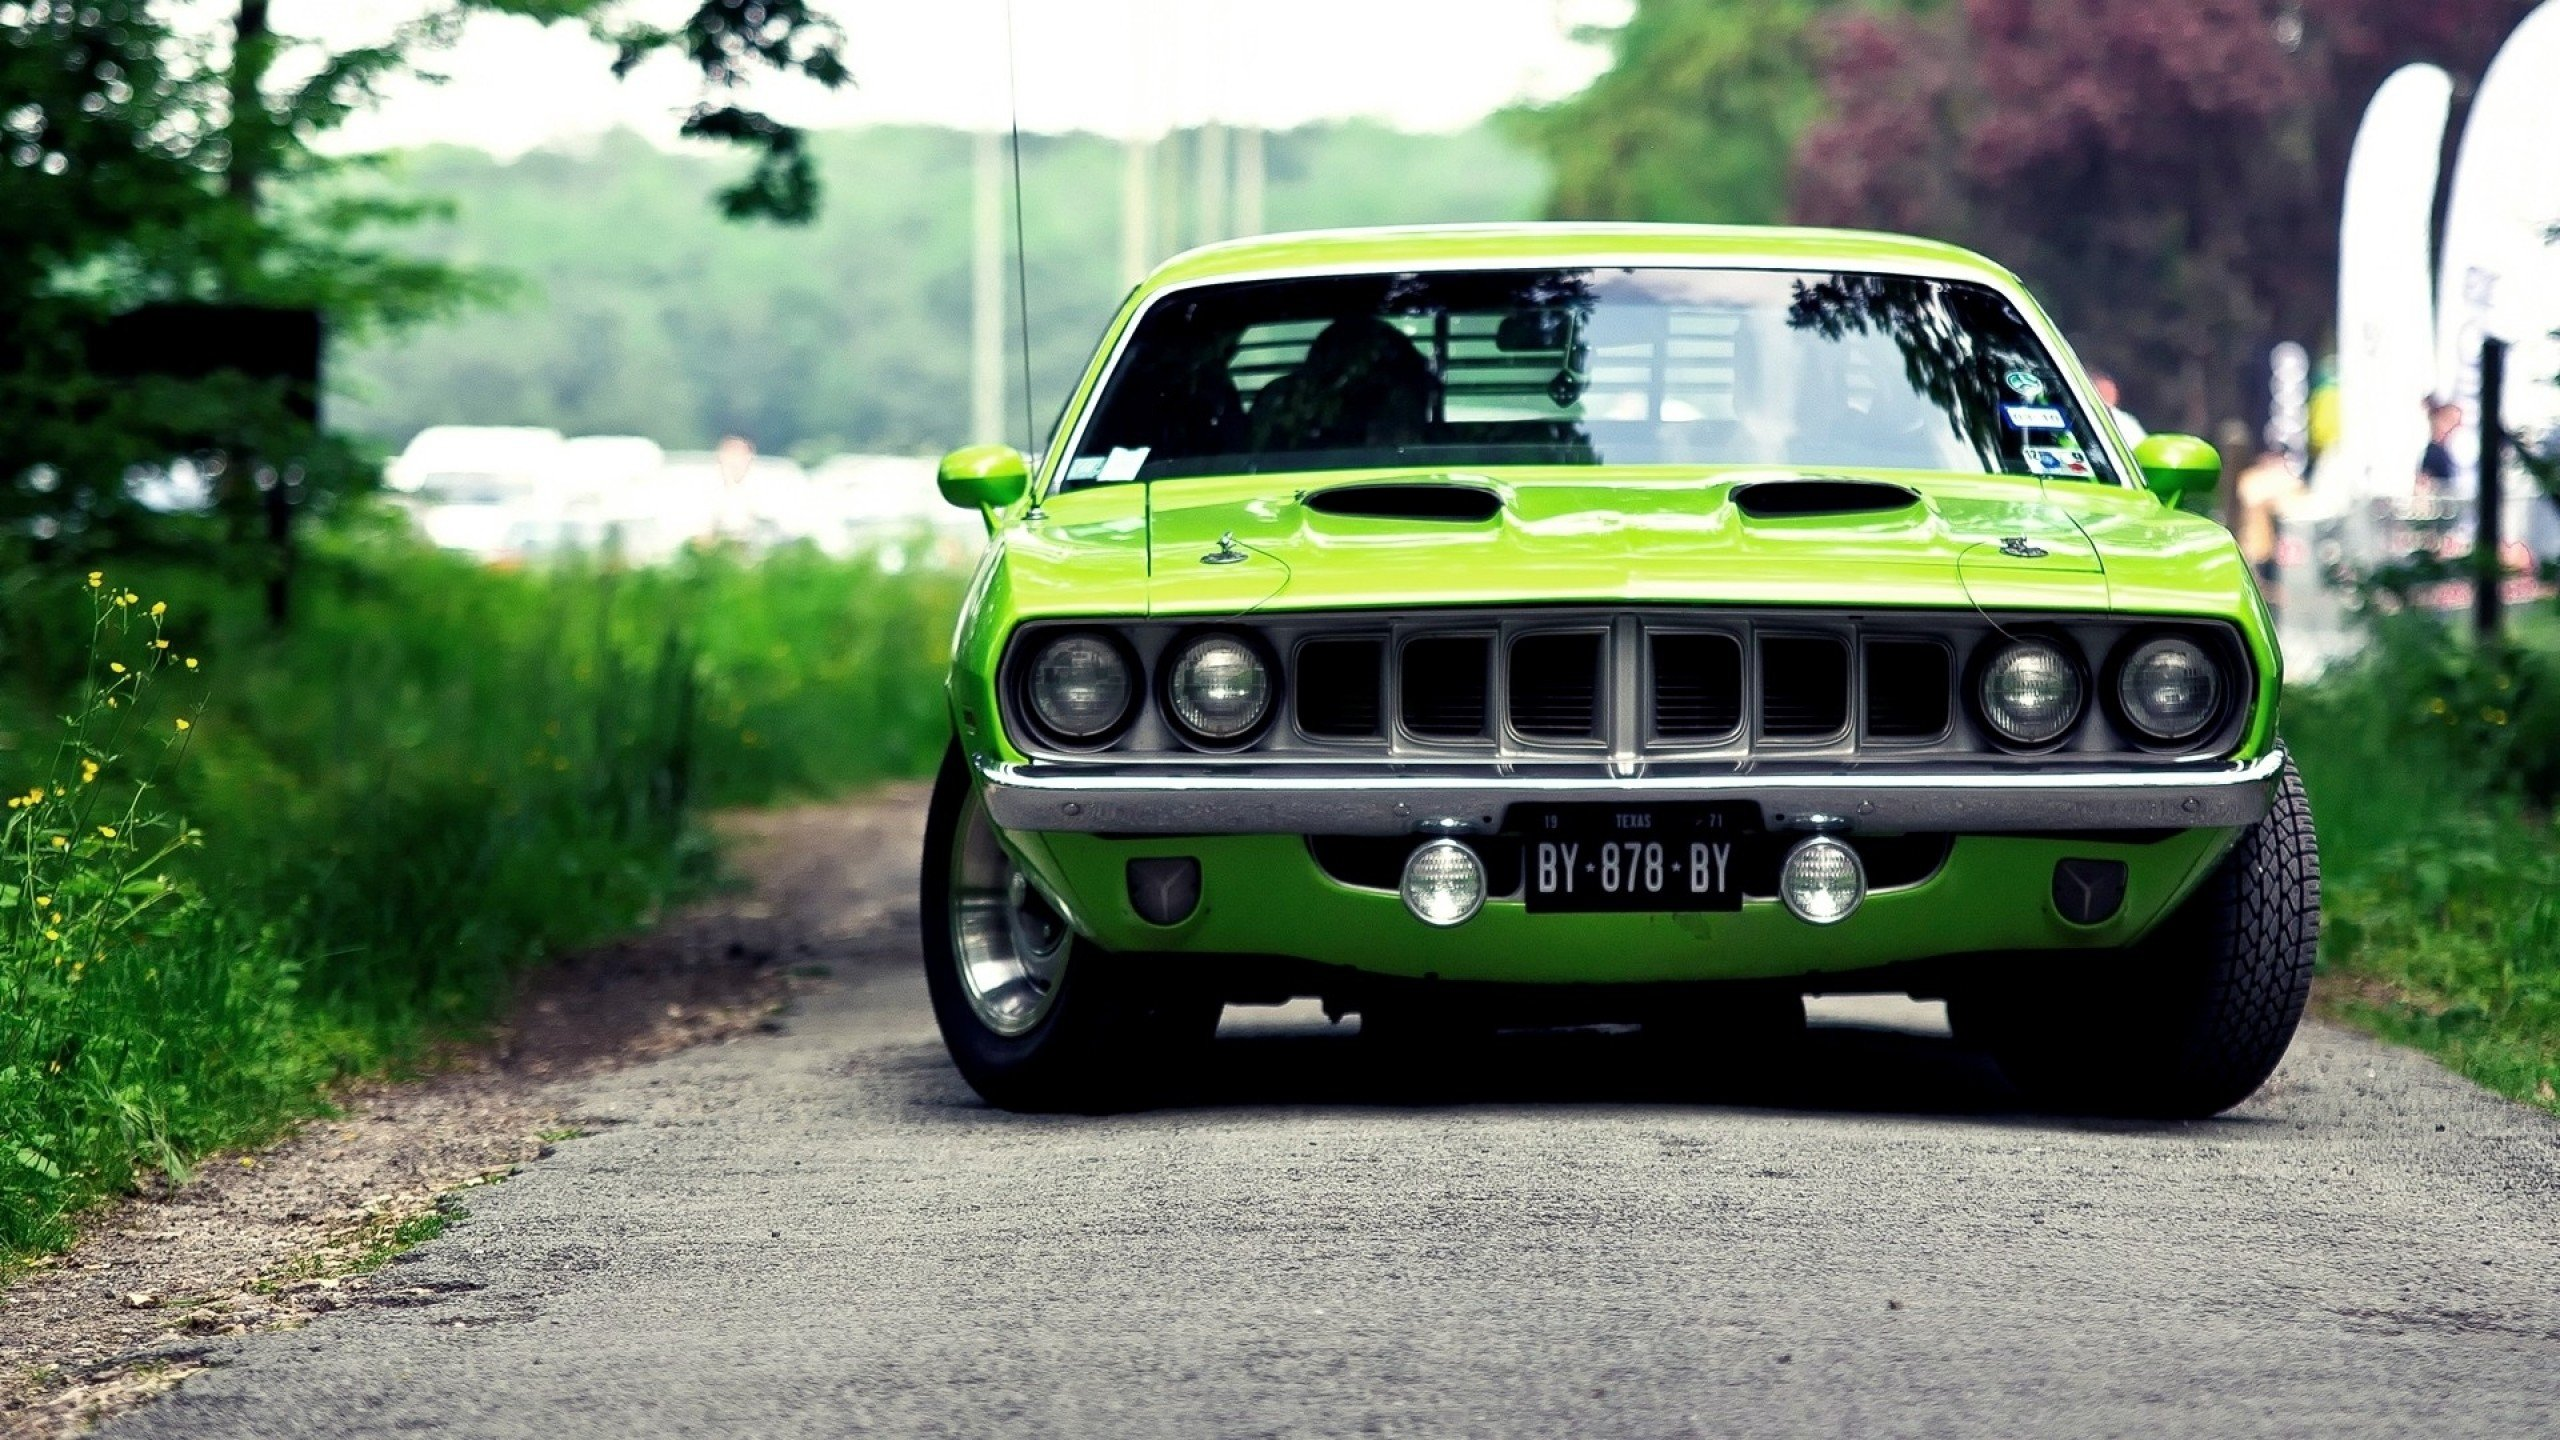 Free Plymouth Barracuda high quality background ID:110297 for hd 2560x1440 computer